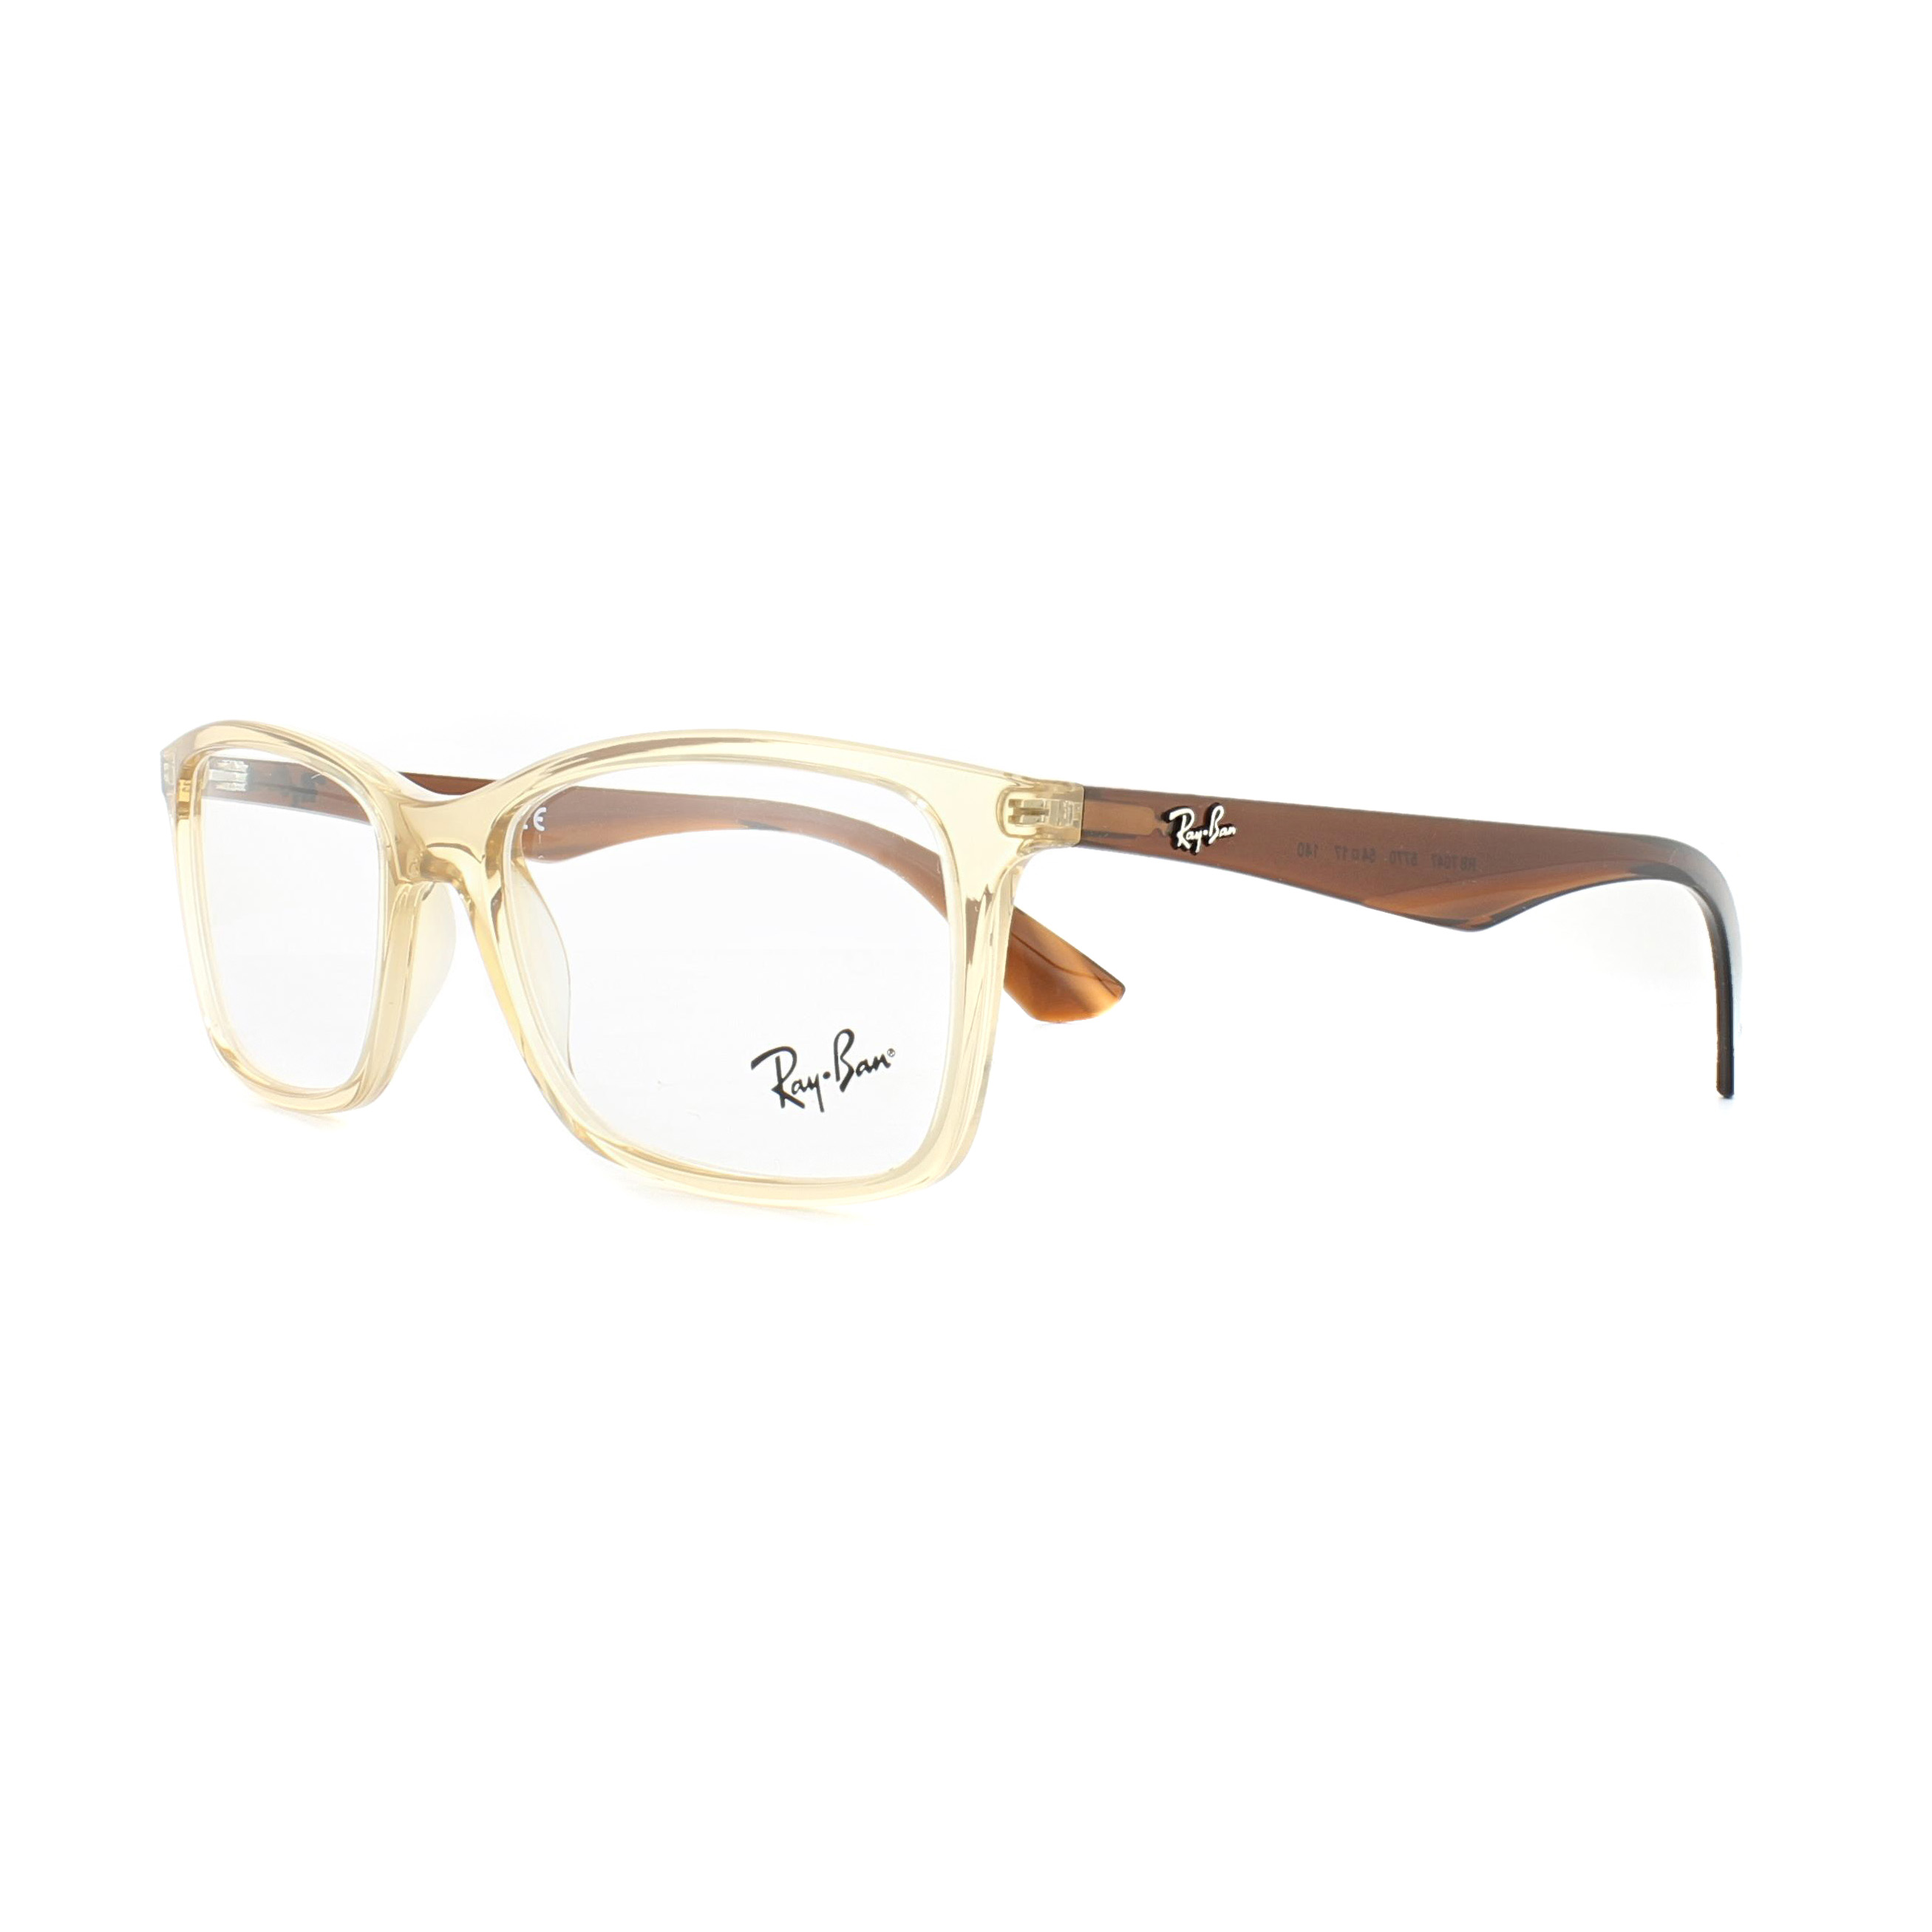 5e3f6cbd1e8 Sentinel Ray-Ban Glasses Frames 7047 5770 Transparent Beige 54mm Mens